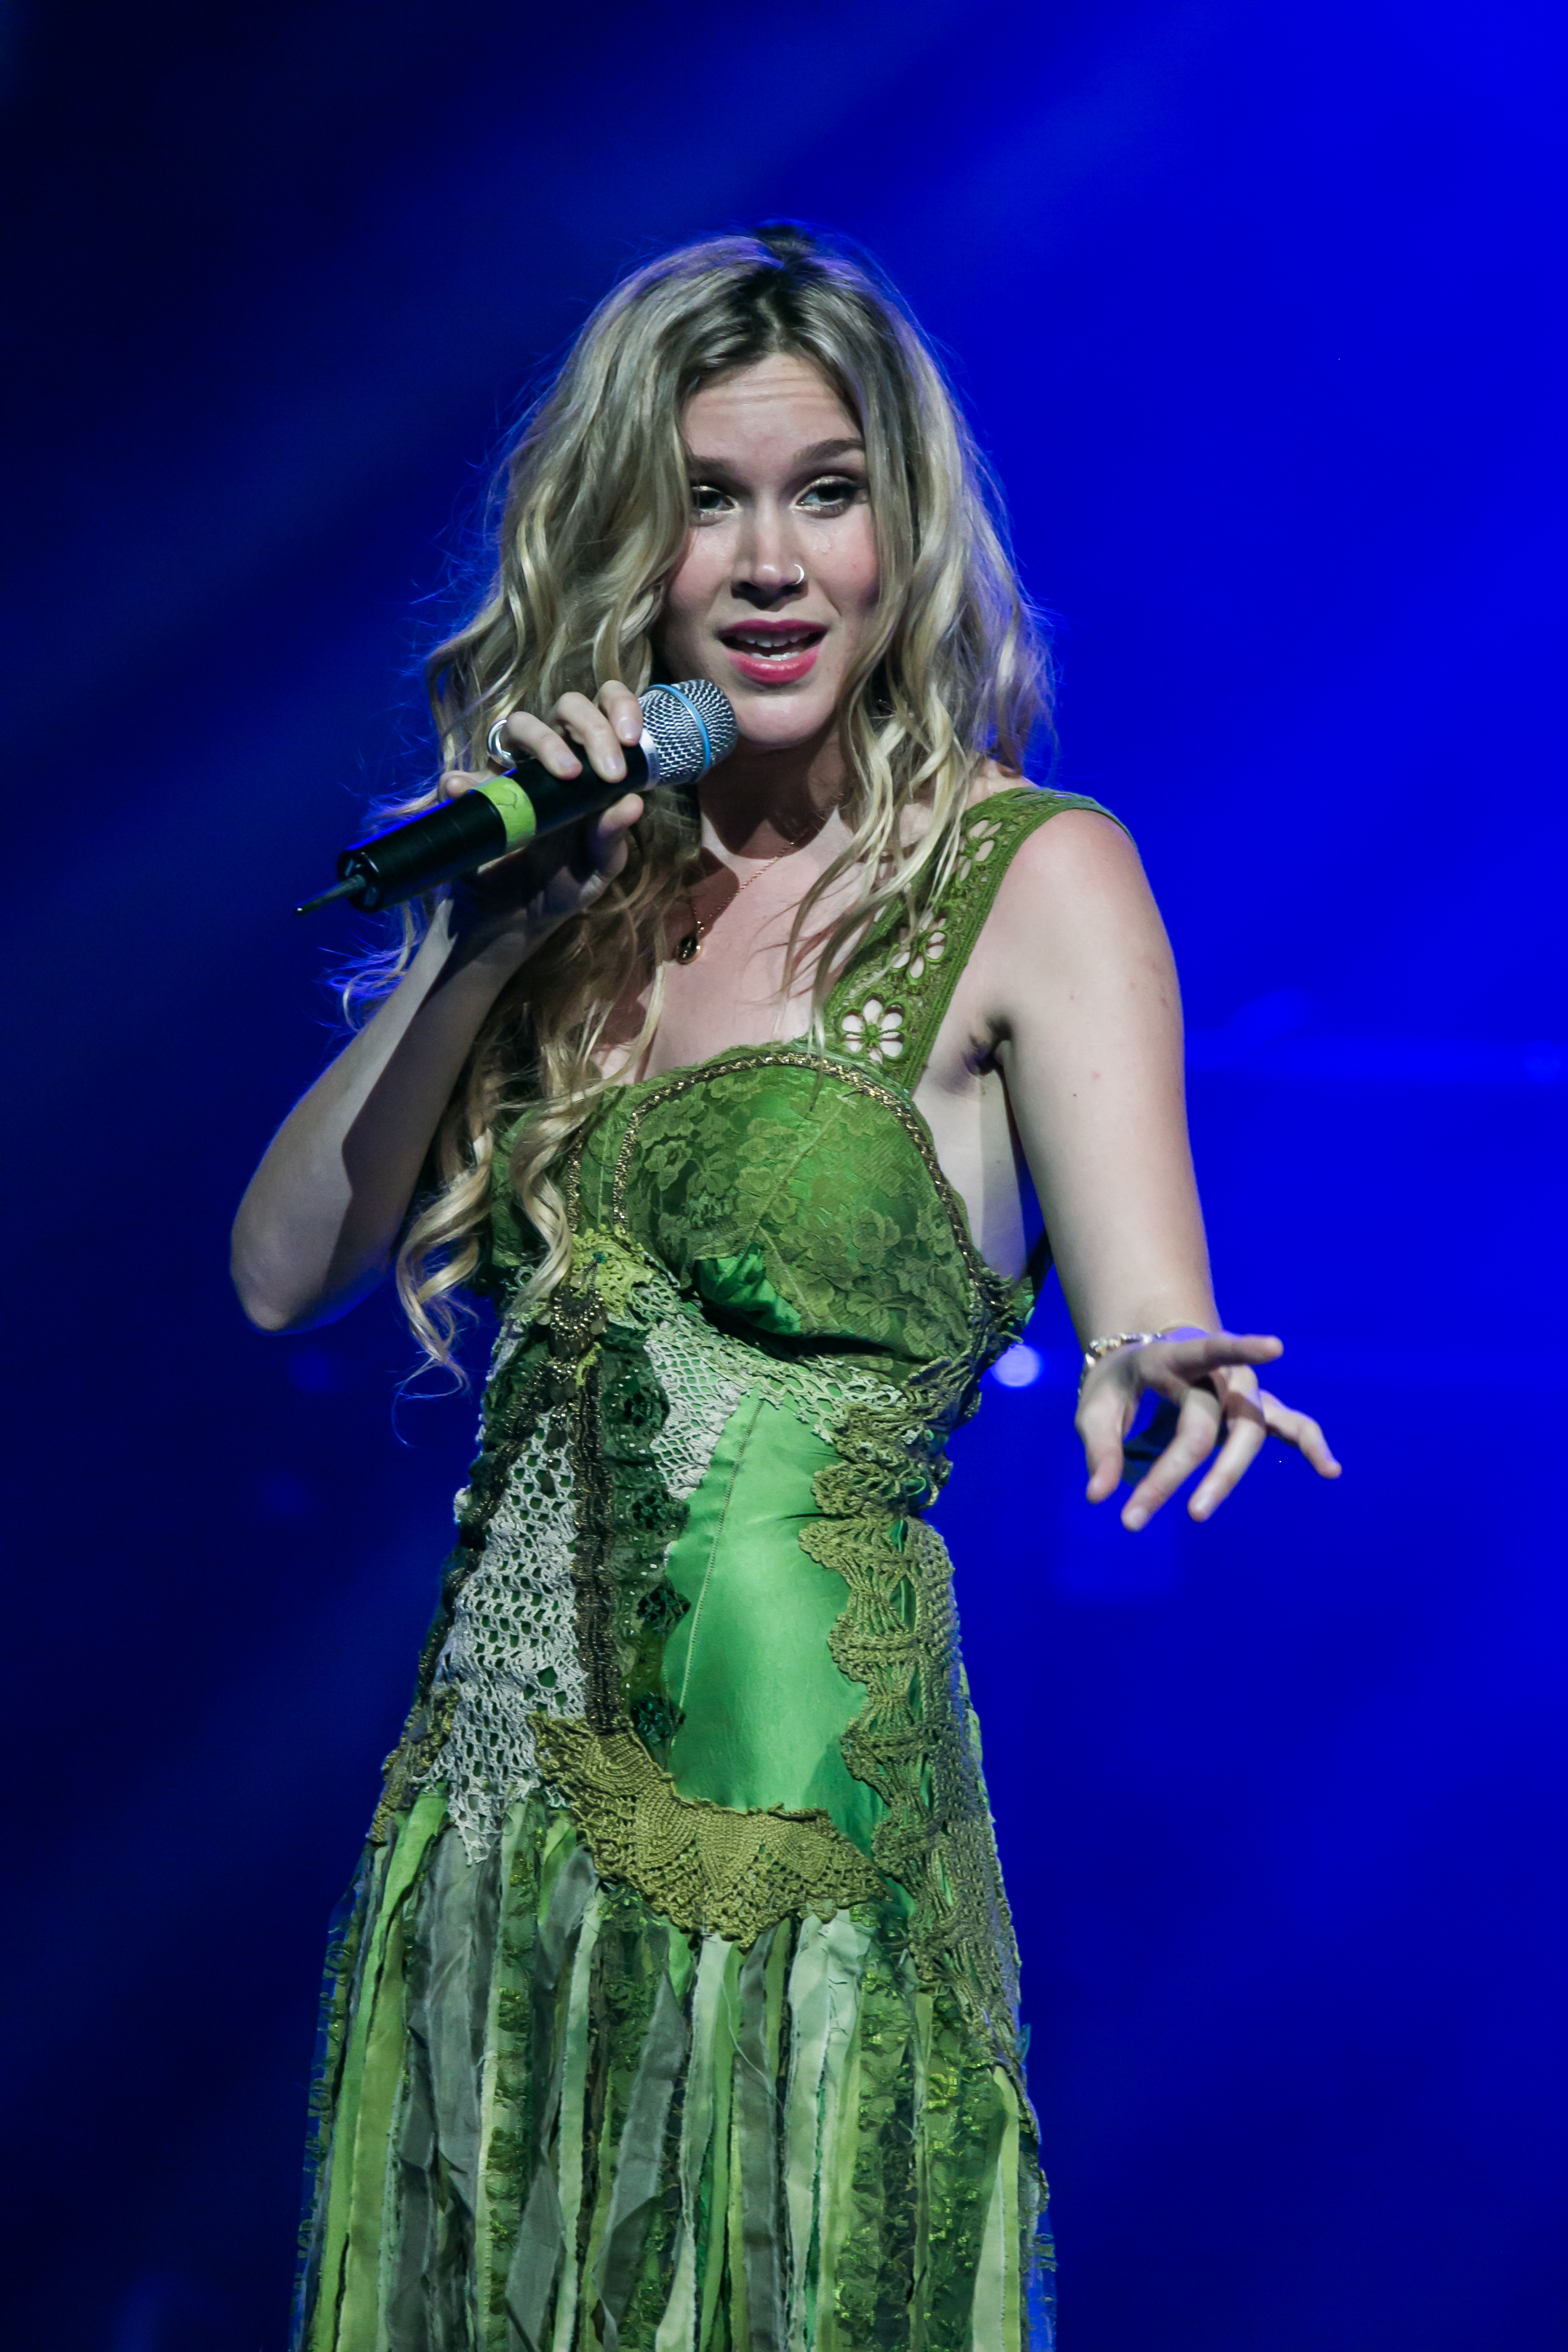 The 34-year old daughter of father Richard Stoker and mother Wendy Stoker Joss Stone in 2021 photo. Joss Stone earned a  million dollar salary - leaving the net worth at  million in 2021